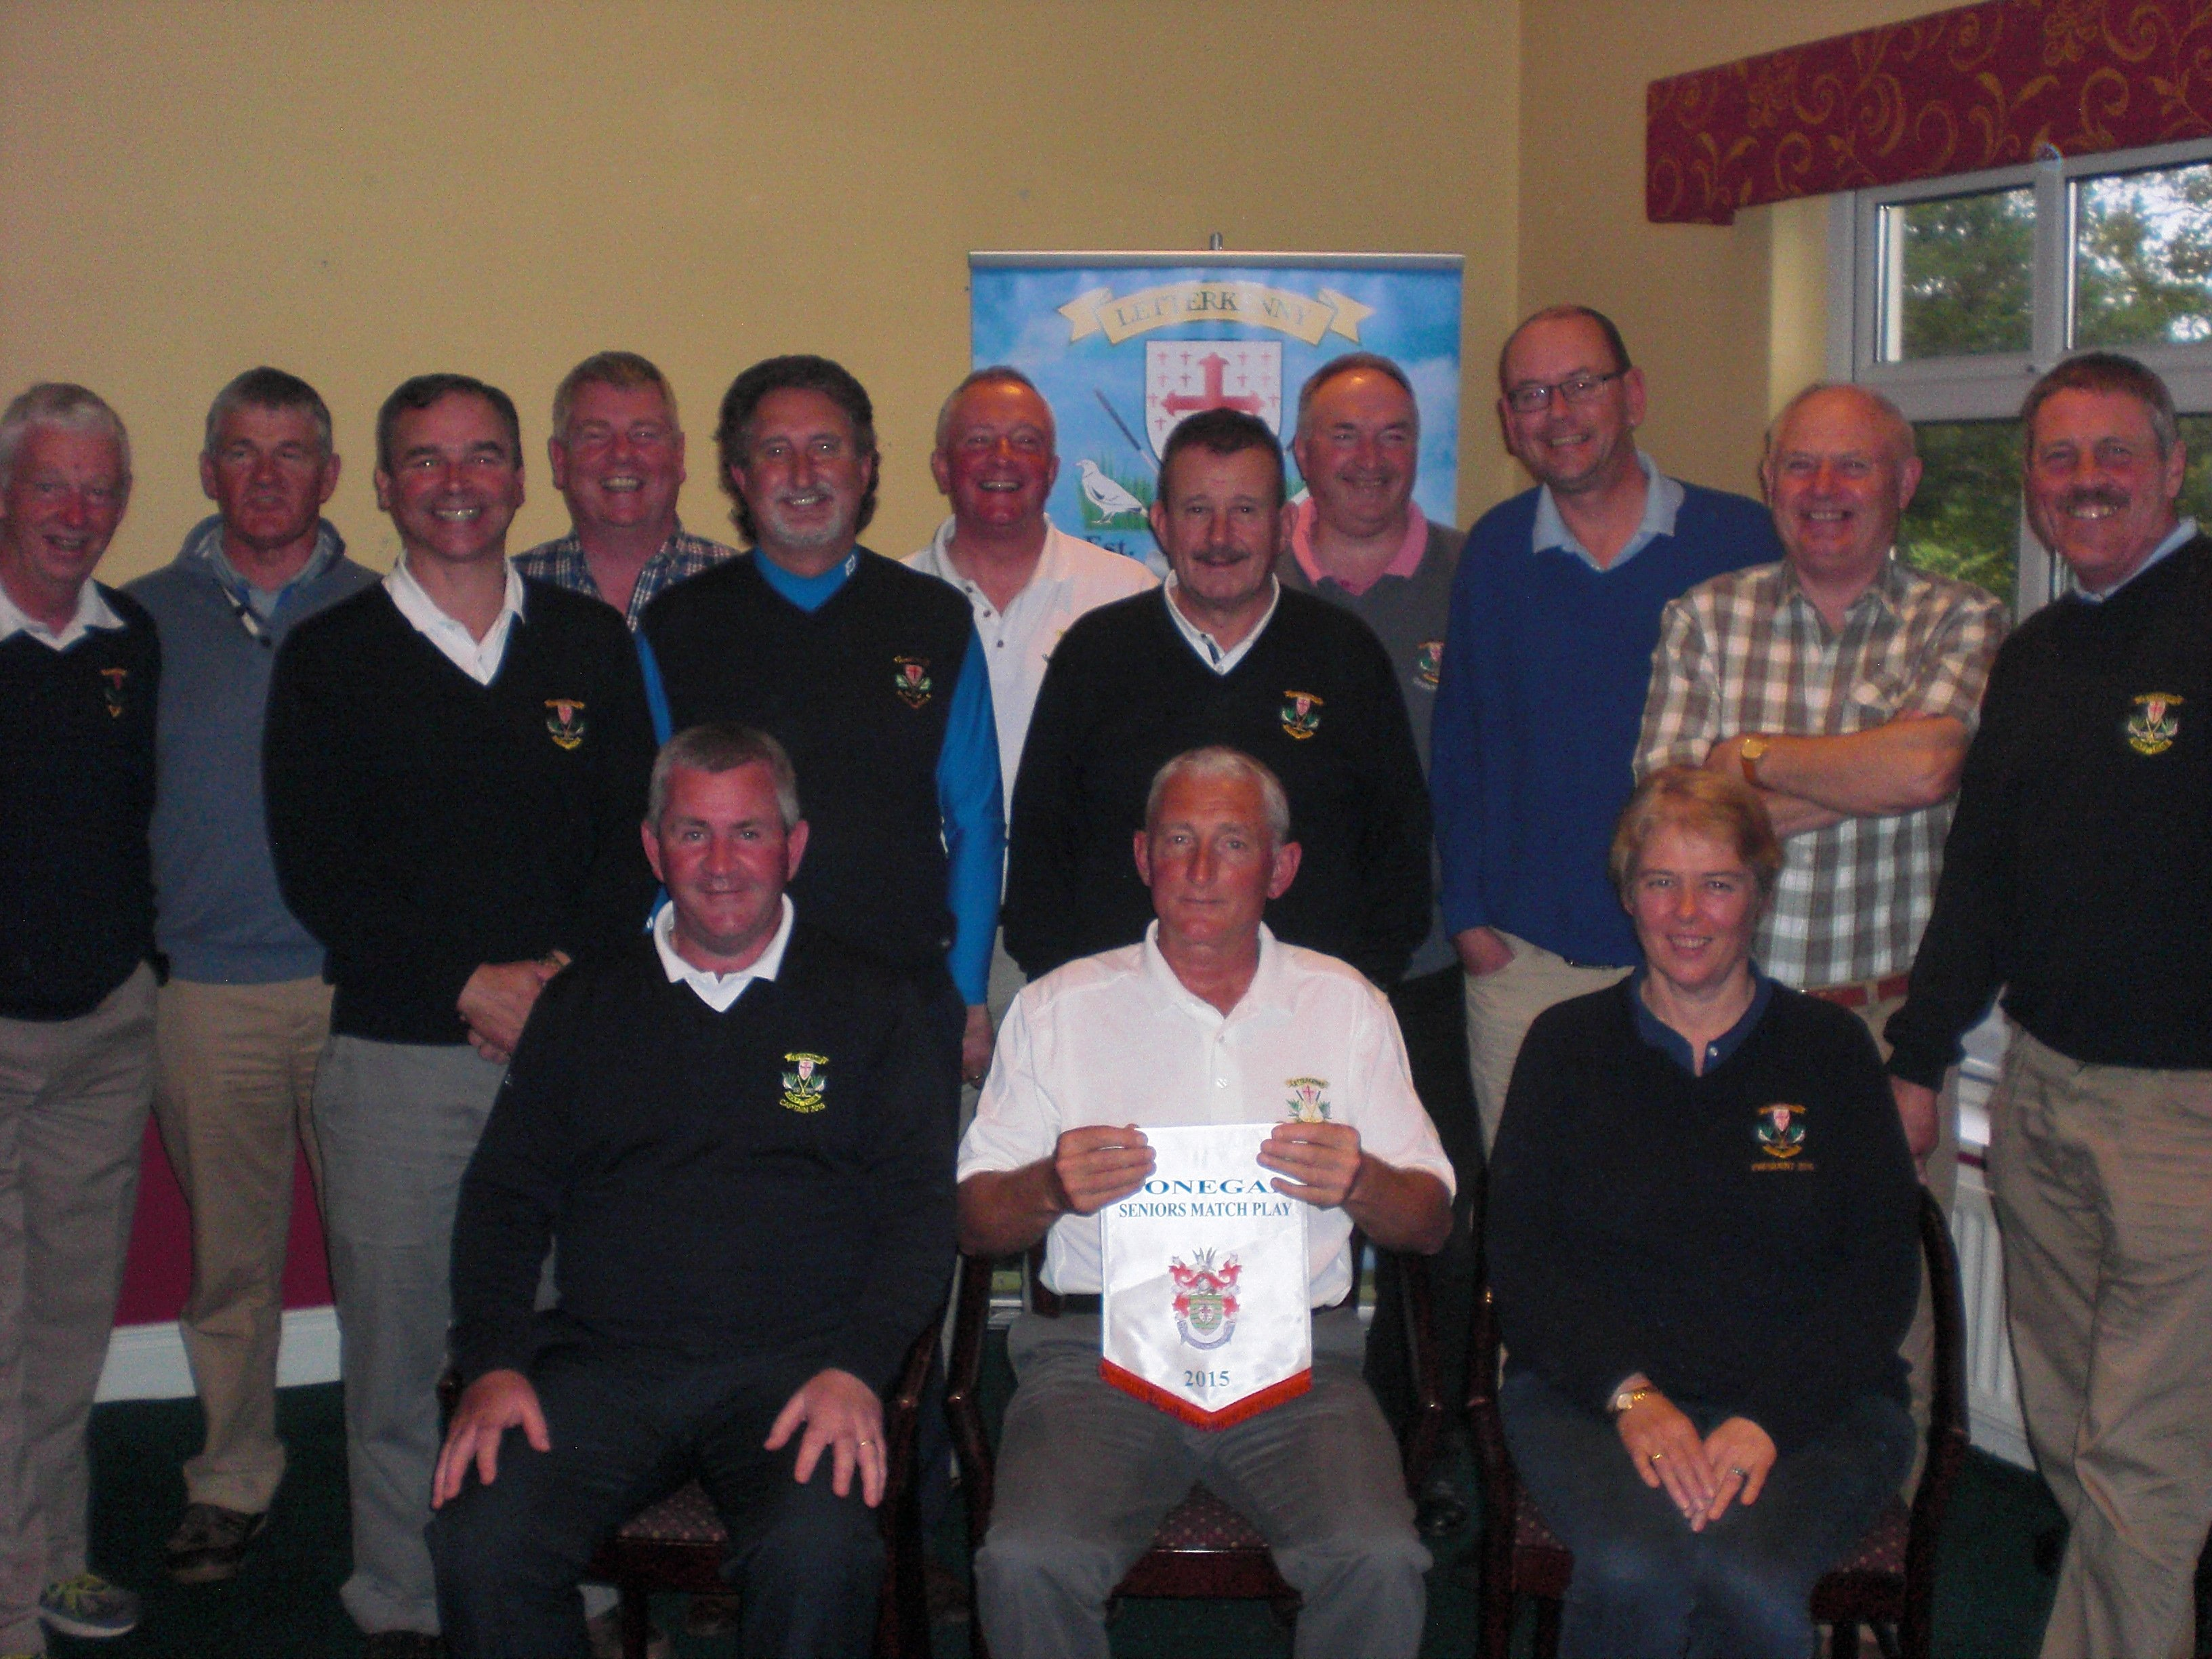 Bobby Mullally, Author at Letterkenny Golf Club, County